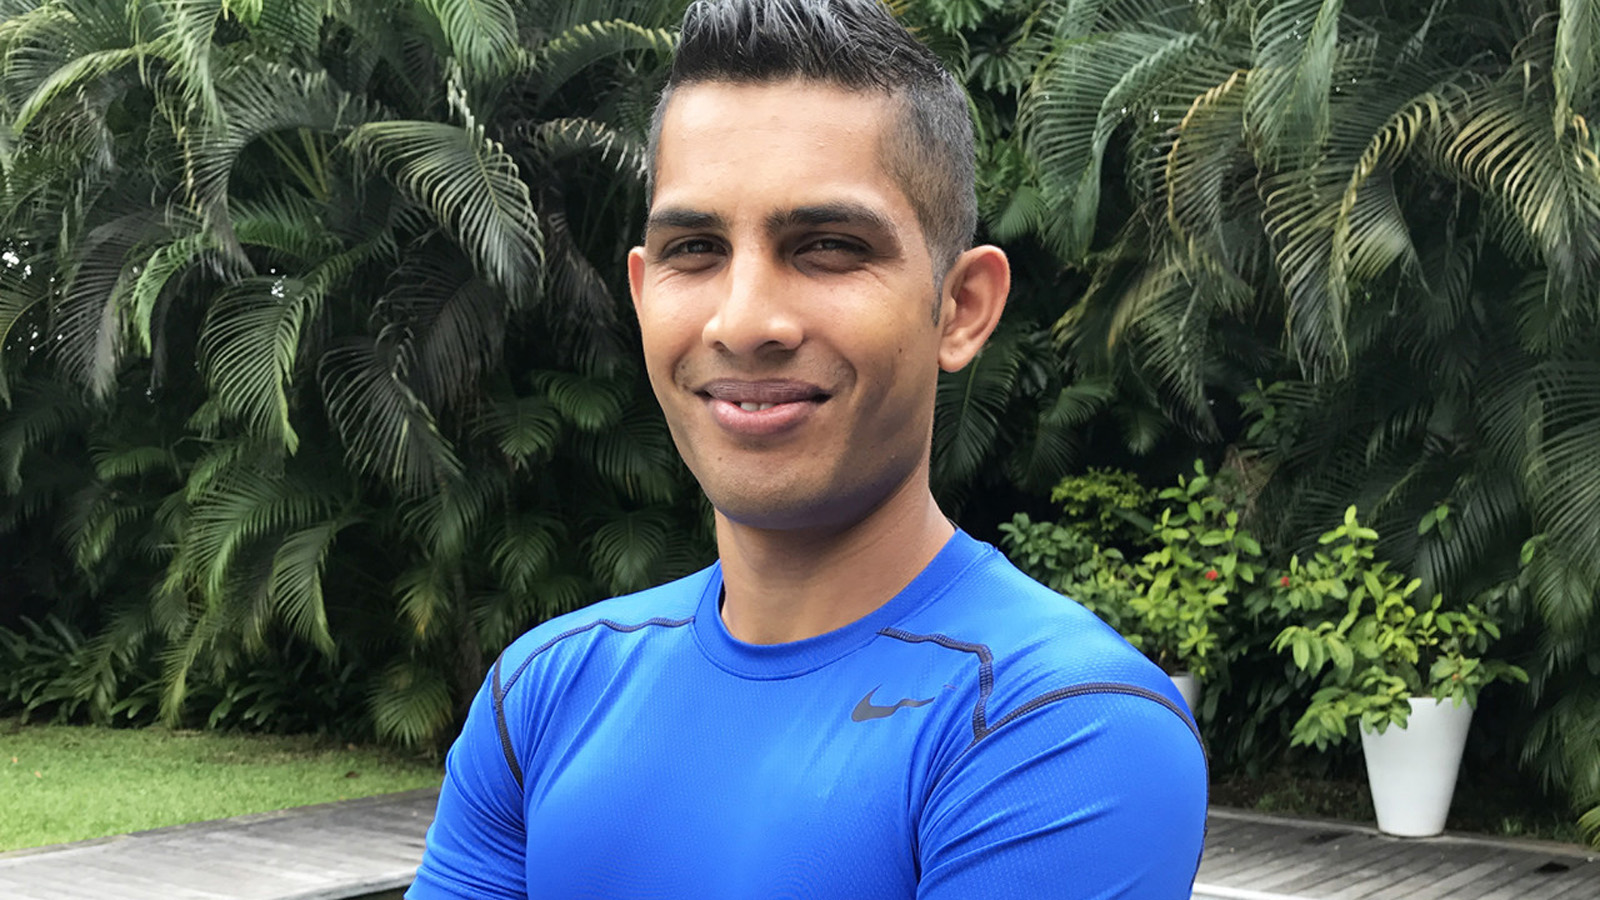 Profile picture for fitness on request - Avishek Coonjan Fitness Instructor